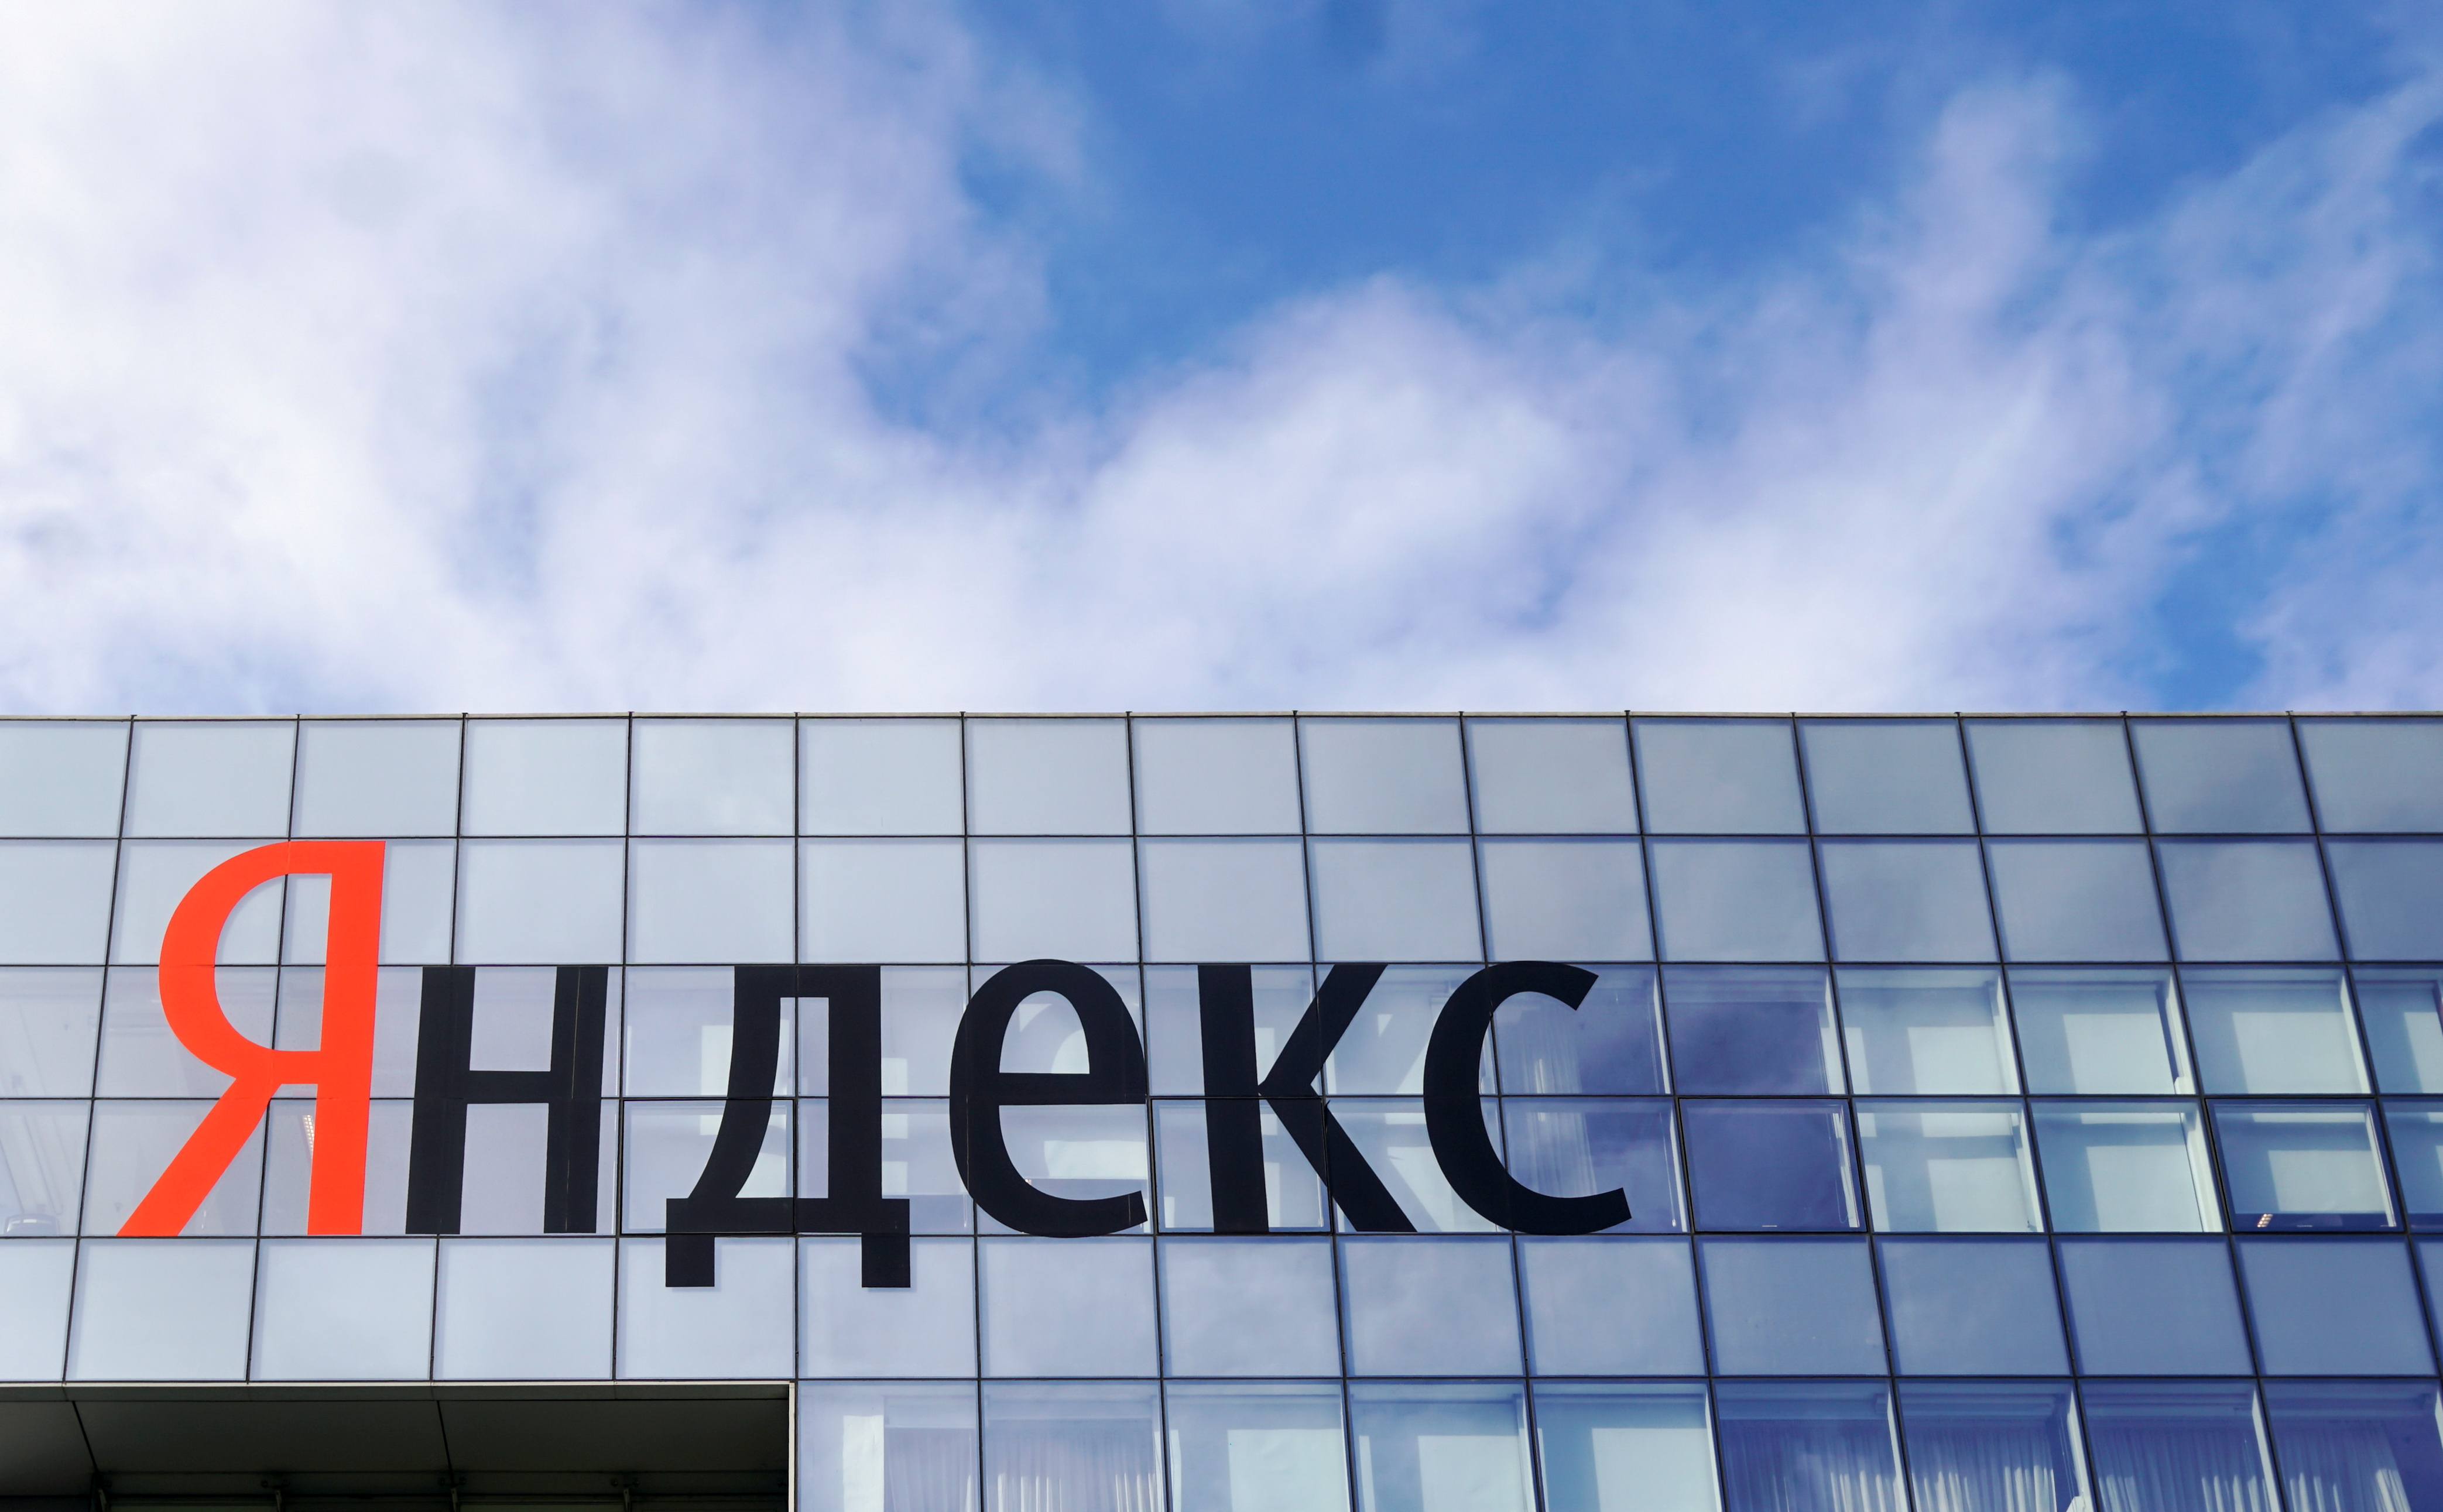 The logo of Russian internet group Yandex is pictured at the company's headquarter in Moscow, Russia October 4, 2018. REUTERS/Shamil Zhumatov/File Photo